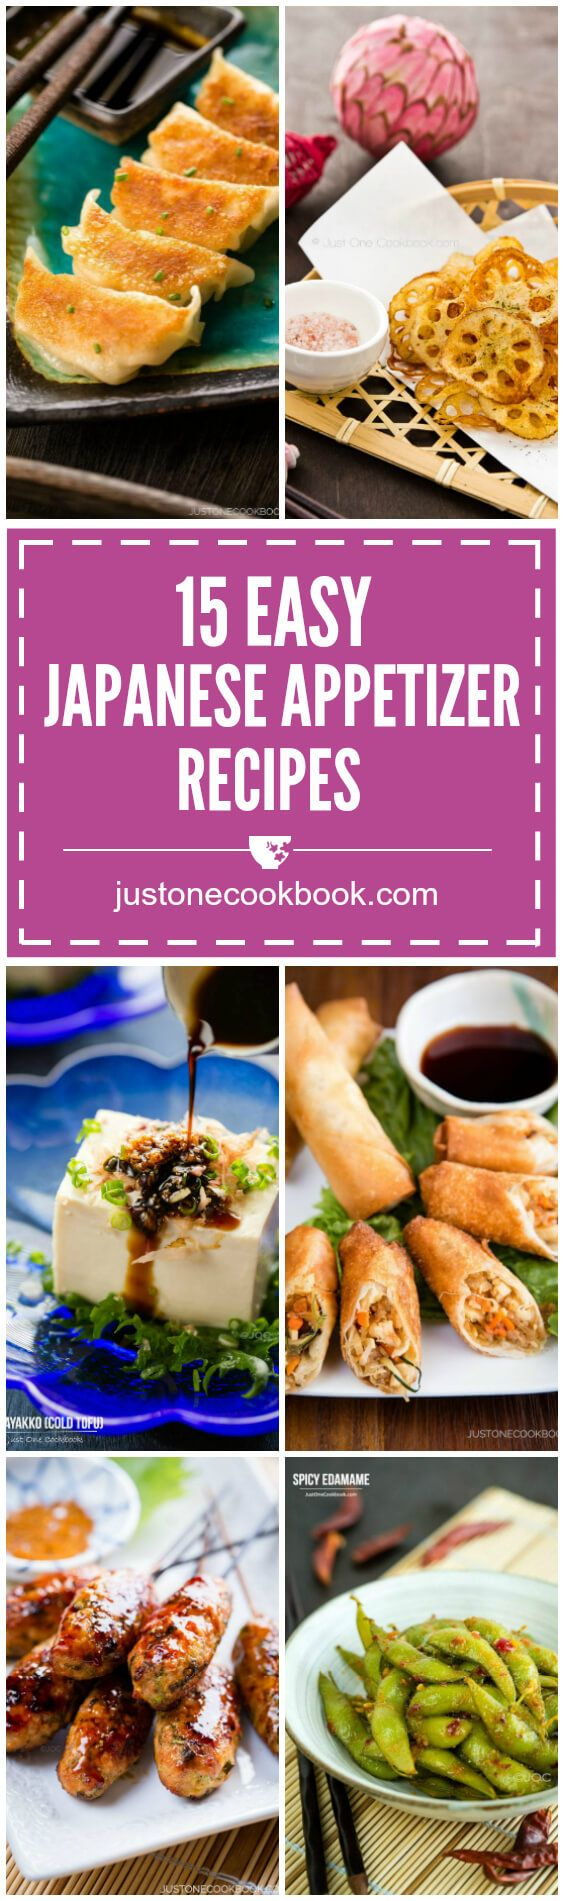 15 Japanese Appetizer Recipes | Easy Japanese Recipes at